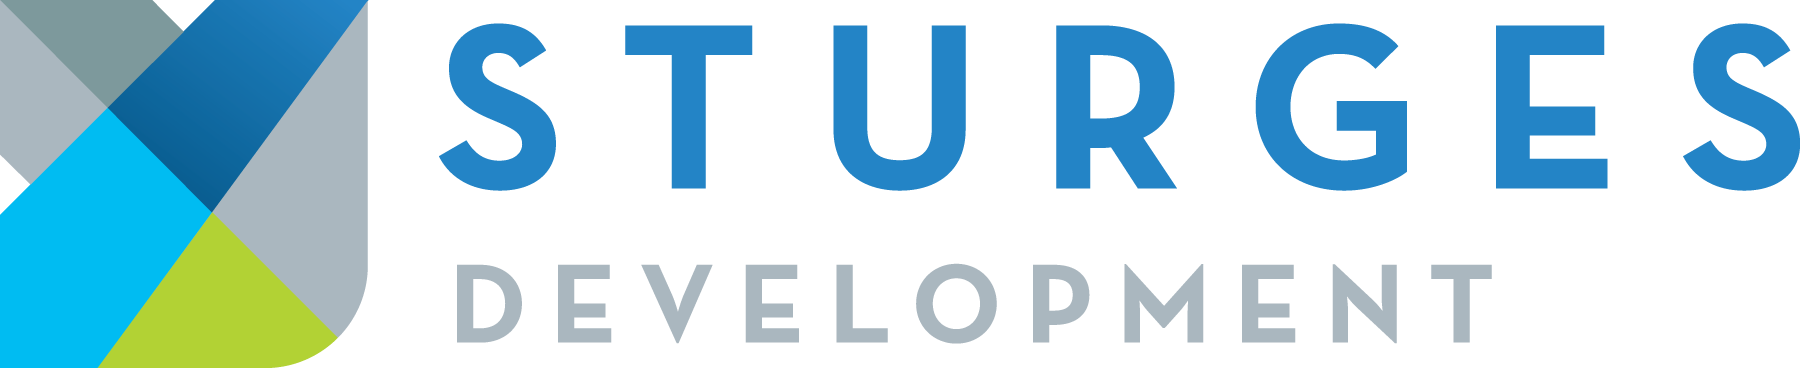 Sturges Development Group logo